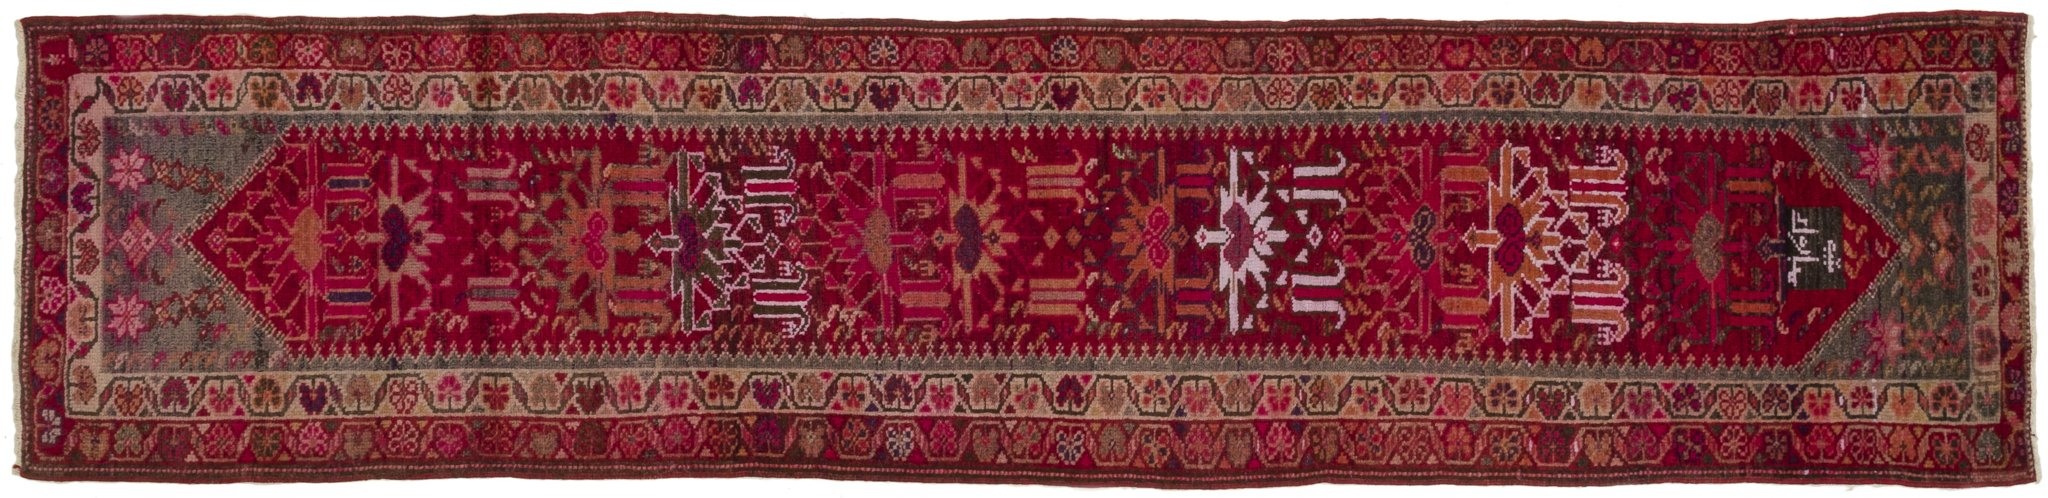 Vintage Turkish Runner Rug Sunna